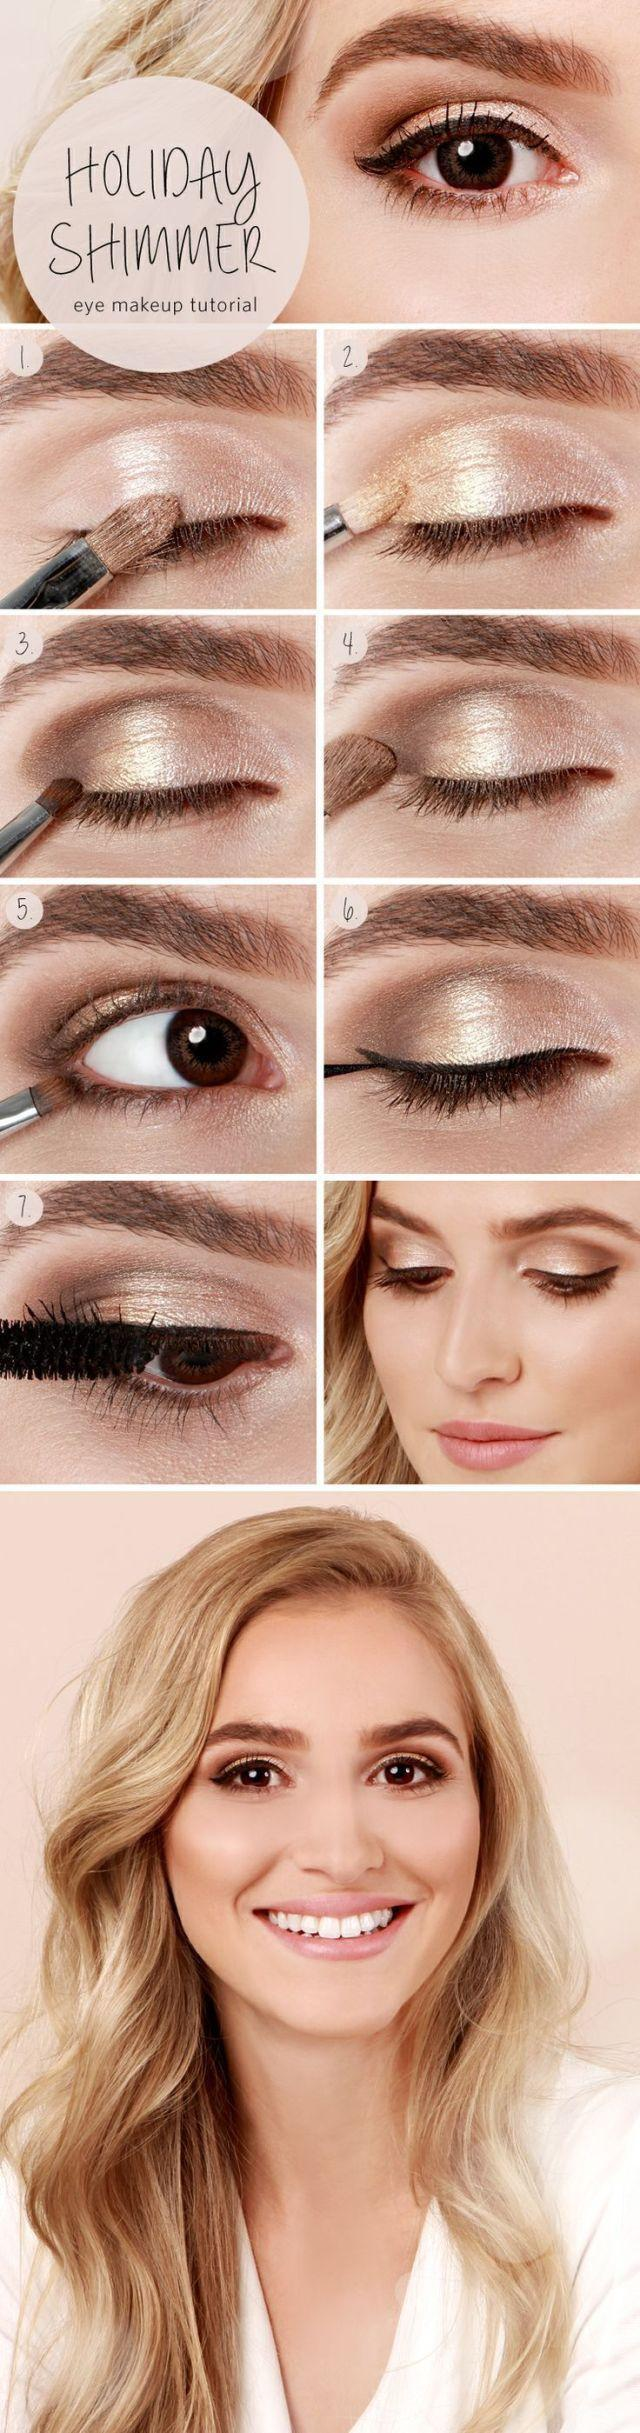 Hochzeit - 10 Eye Makeup Tutorials From Pinterest To Turn You Into A Beauty PRO